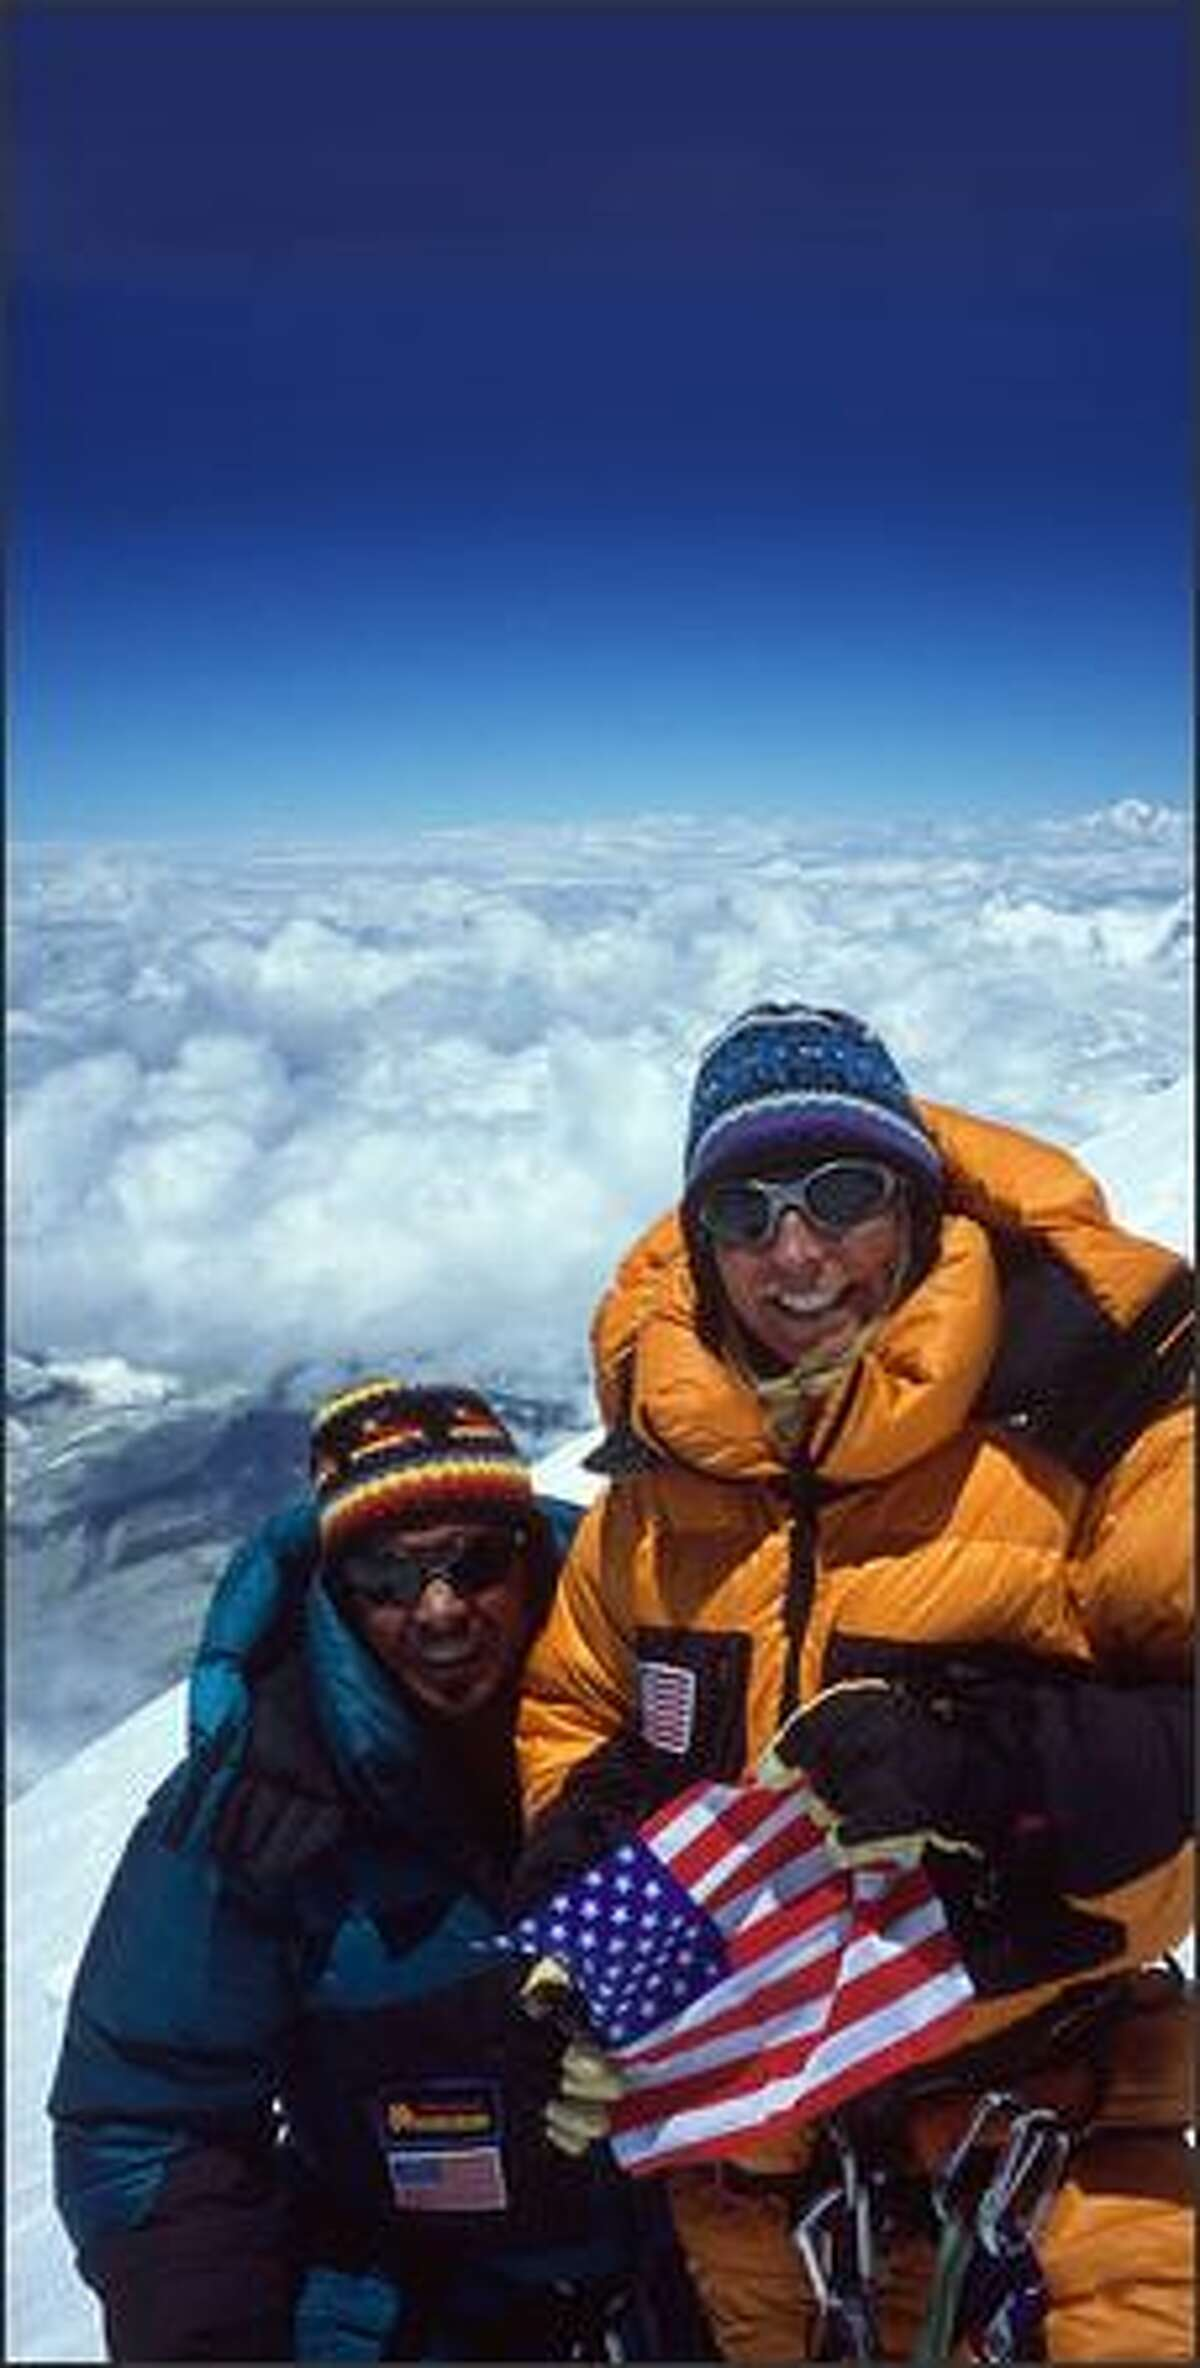 Phil and Sue Ershler of Kirkland stand on top of the world, 29,035-foot Mount Everest, on May 16, 2002.